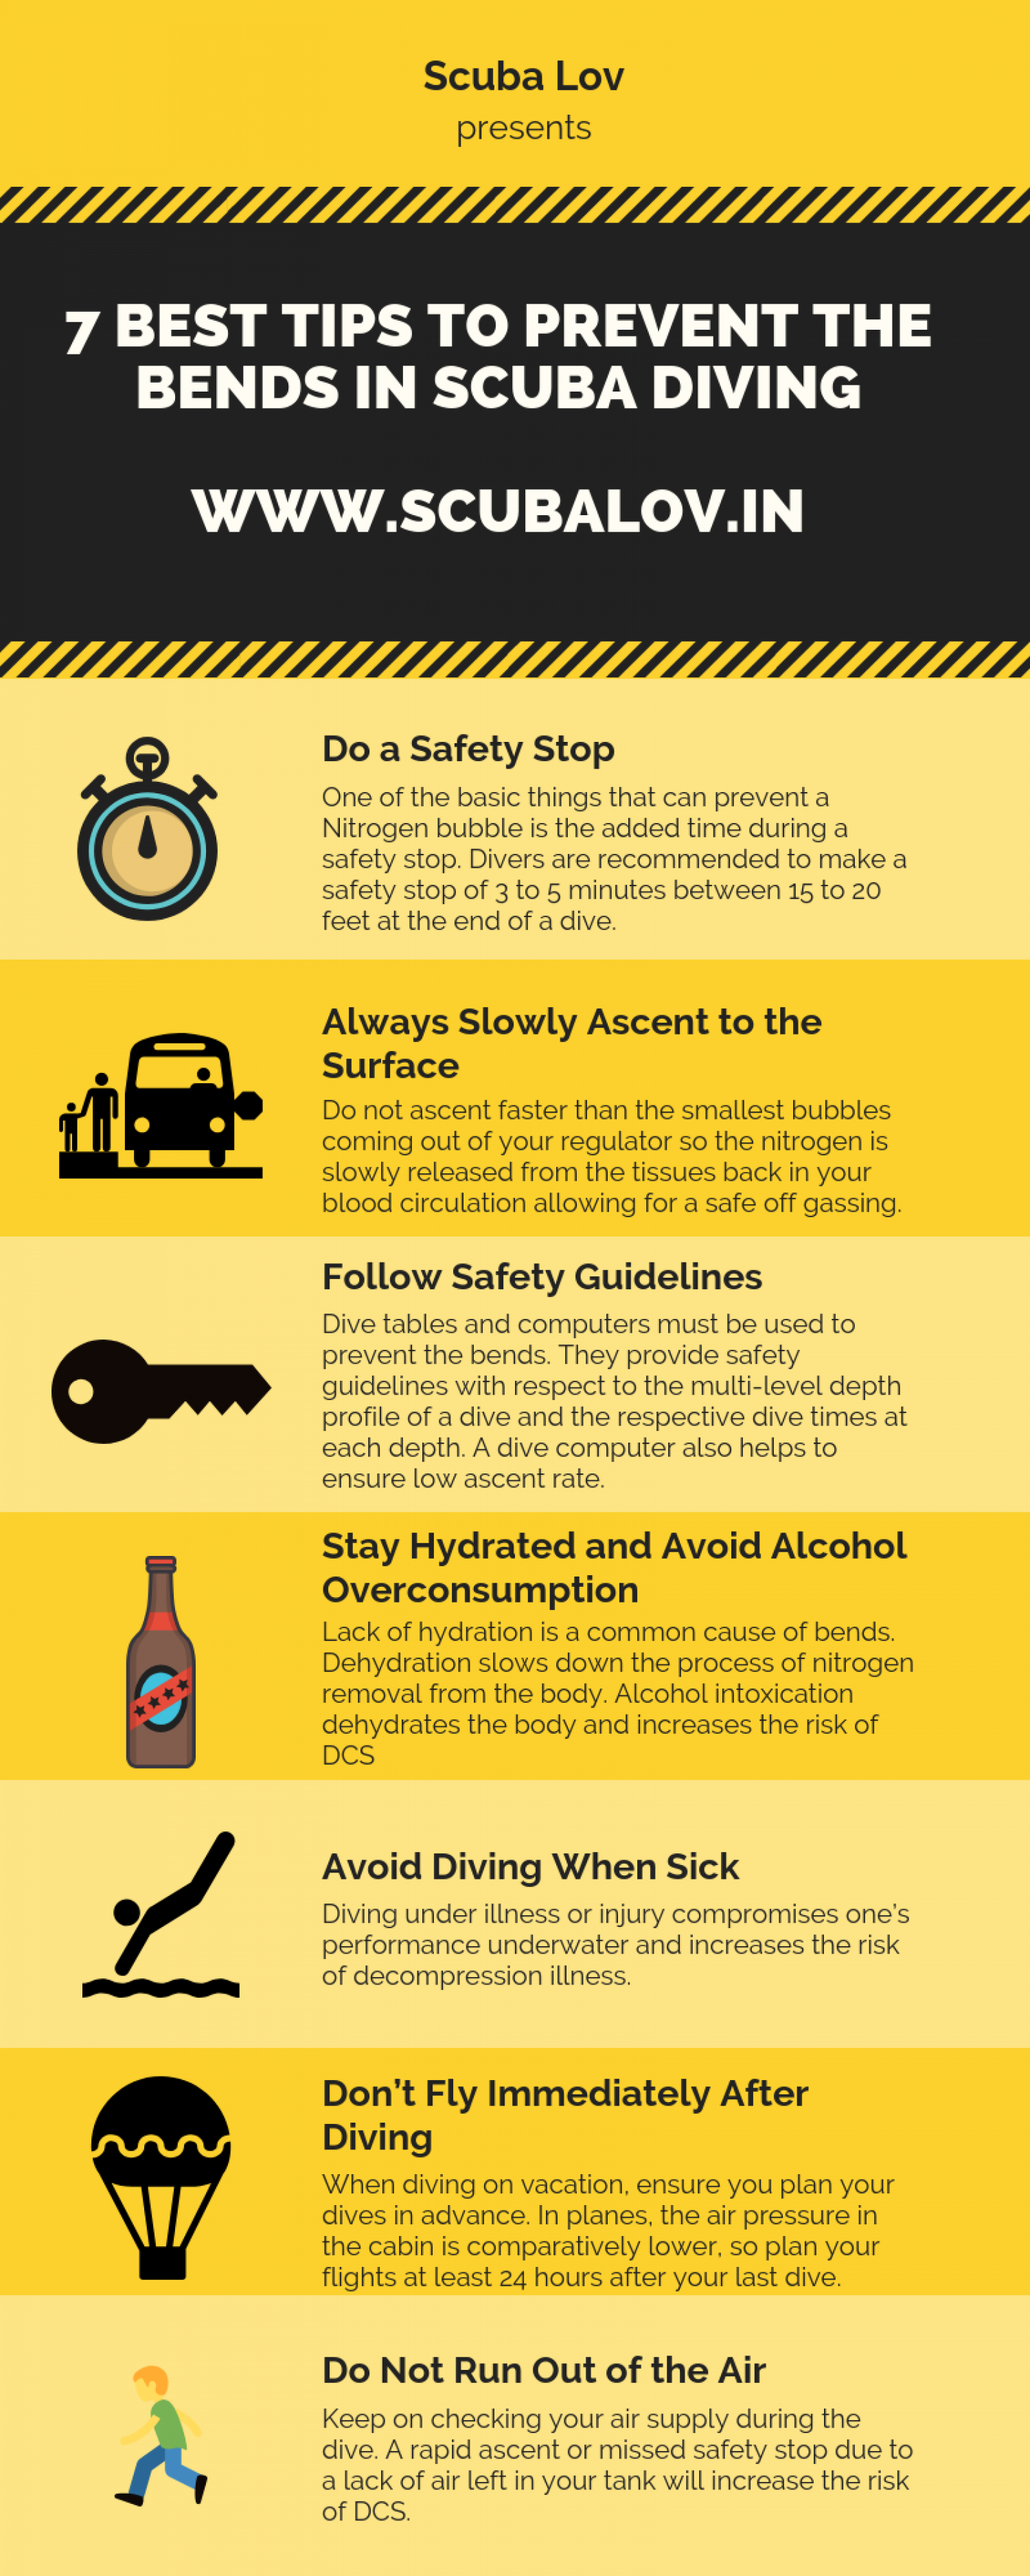 7 Best Tips to Prevent the Bends in Scuba Diving Infographic